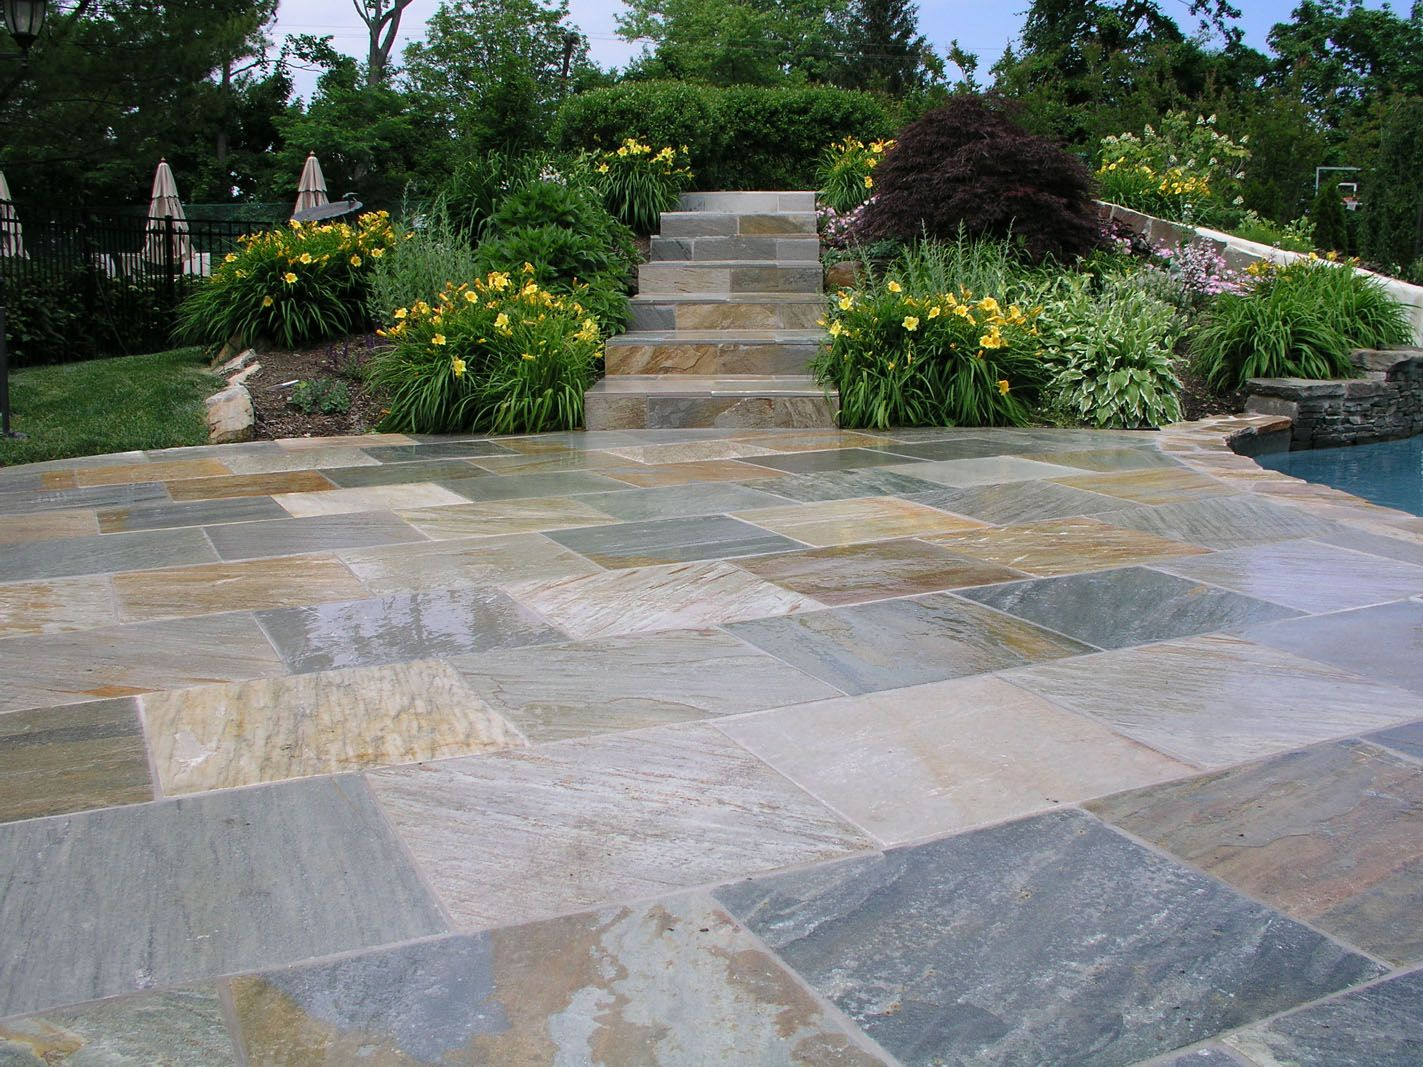 Pavers-golden White Curb Appeal & Outdoor Living